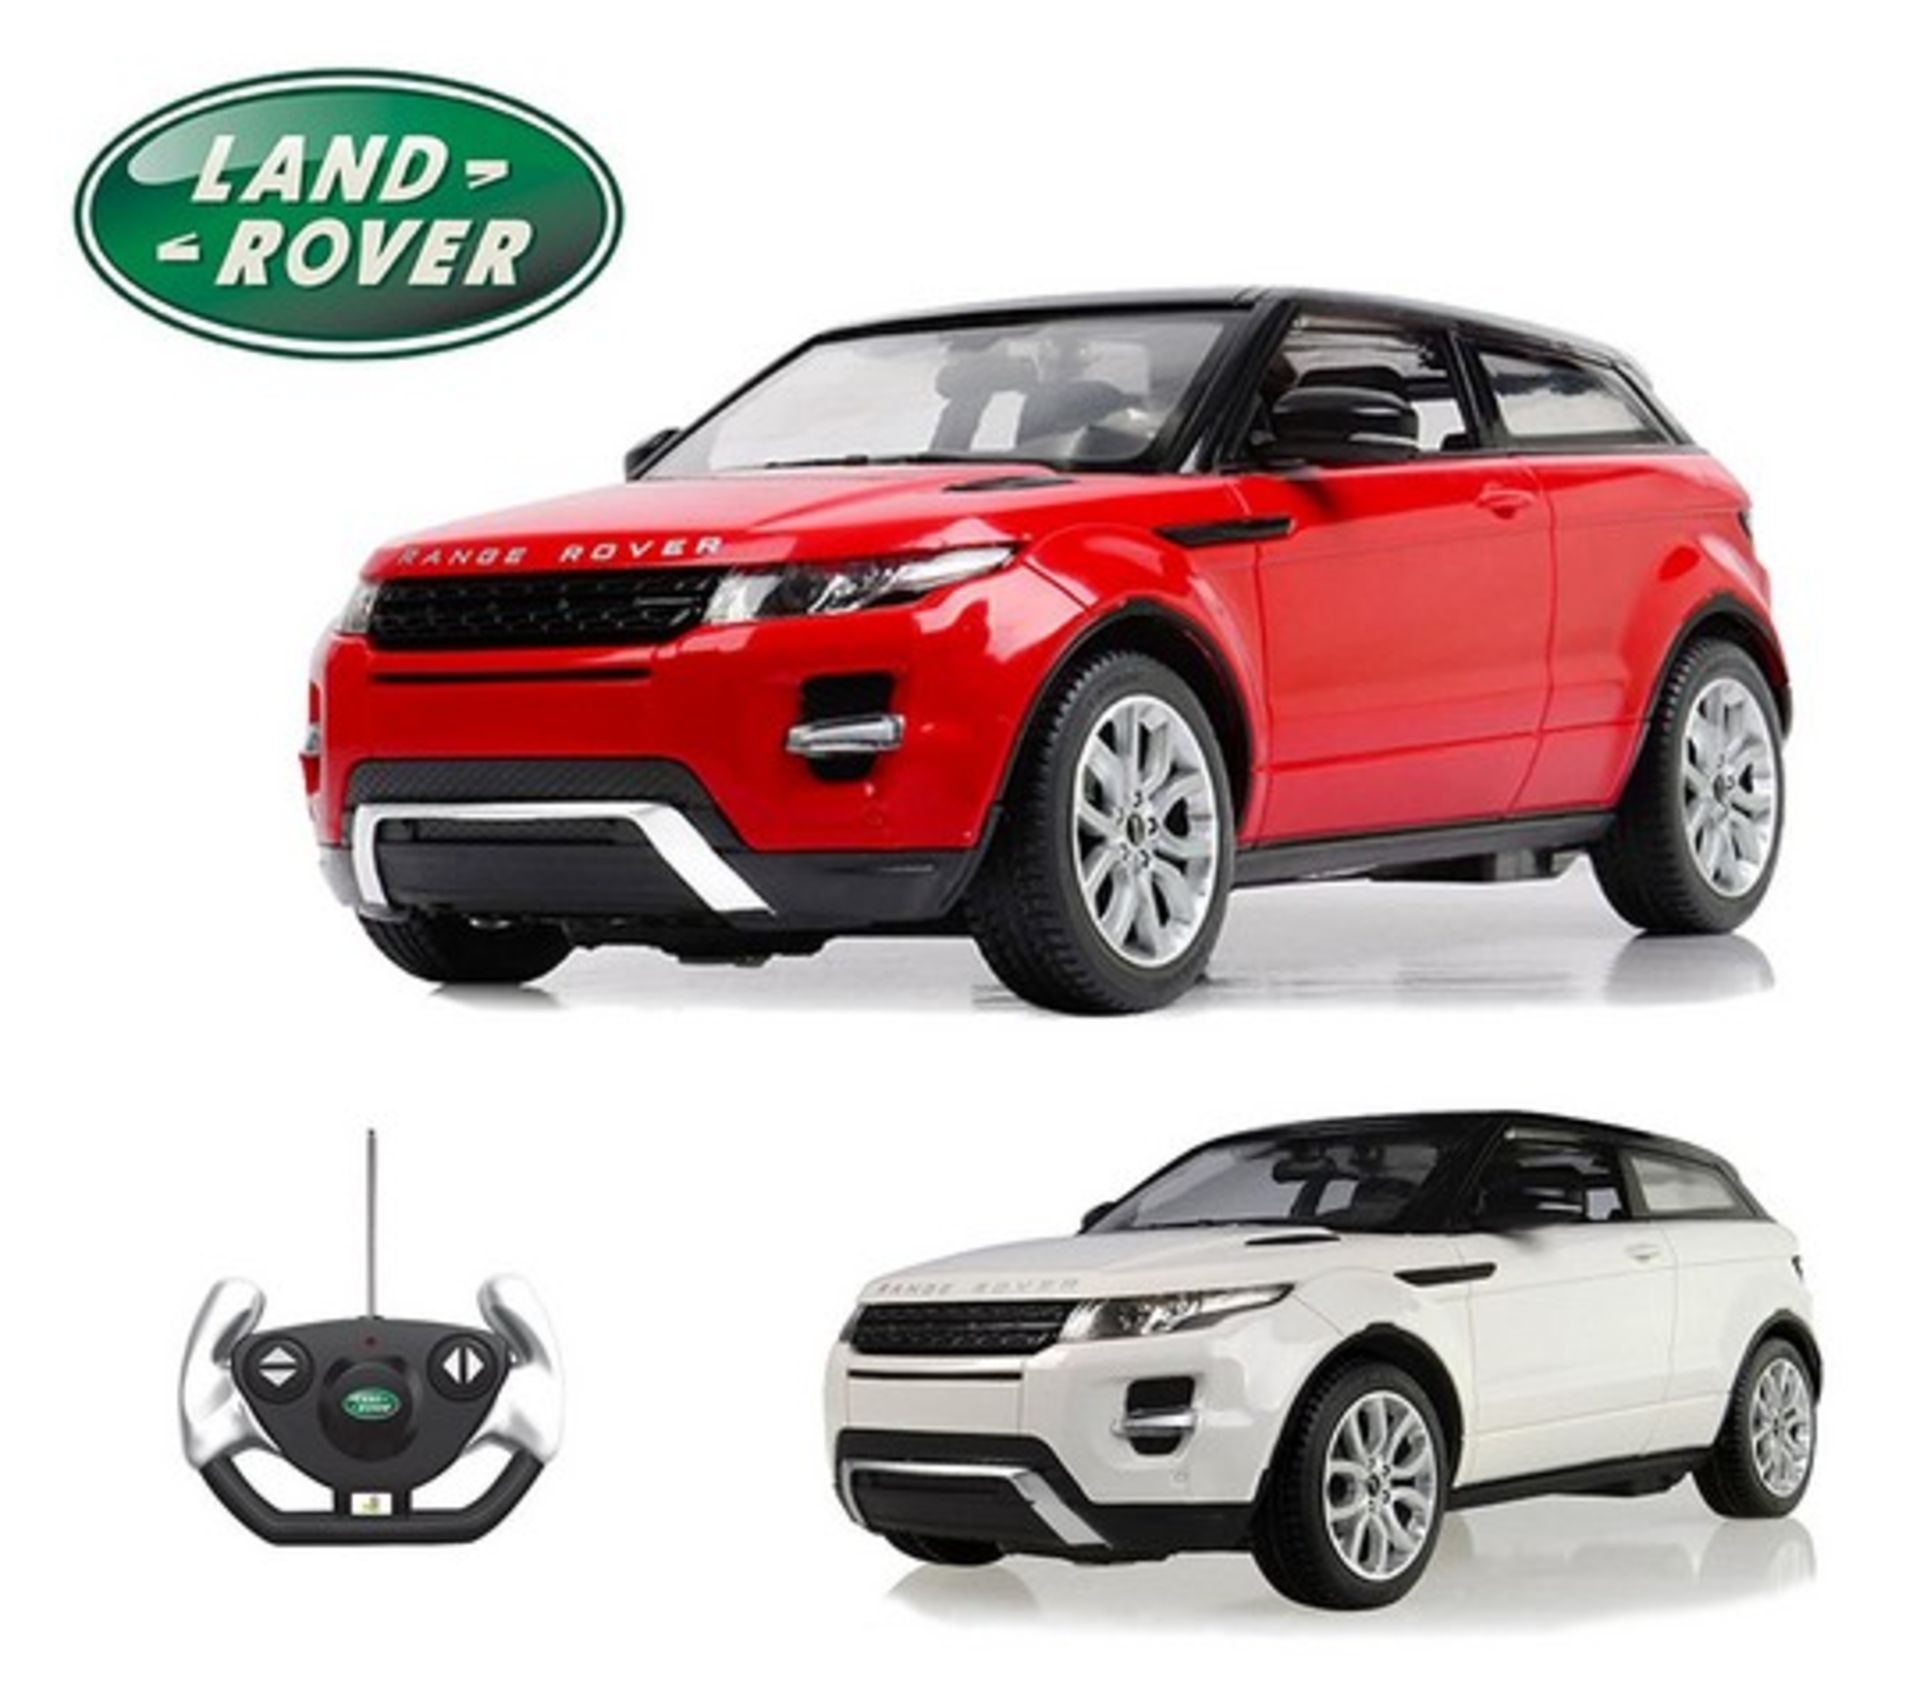 Lot 12050 - V Brand New R/C 1:14 Scale Range Rover Evoque - Amazon Price £37.00 - Colours May Vary